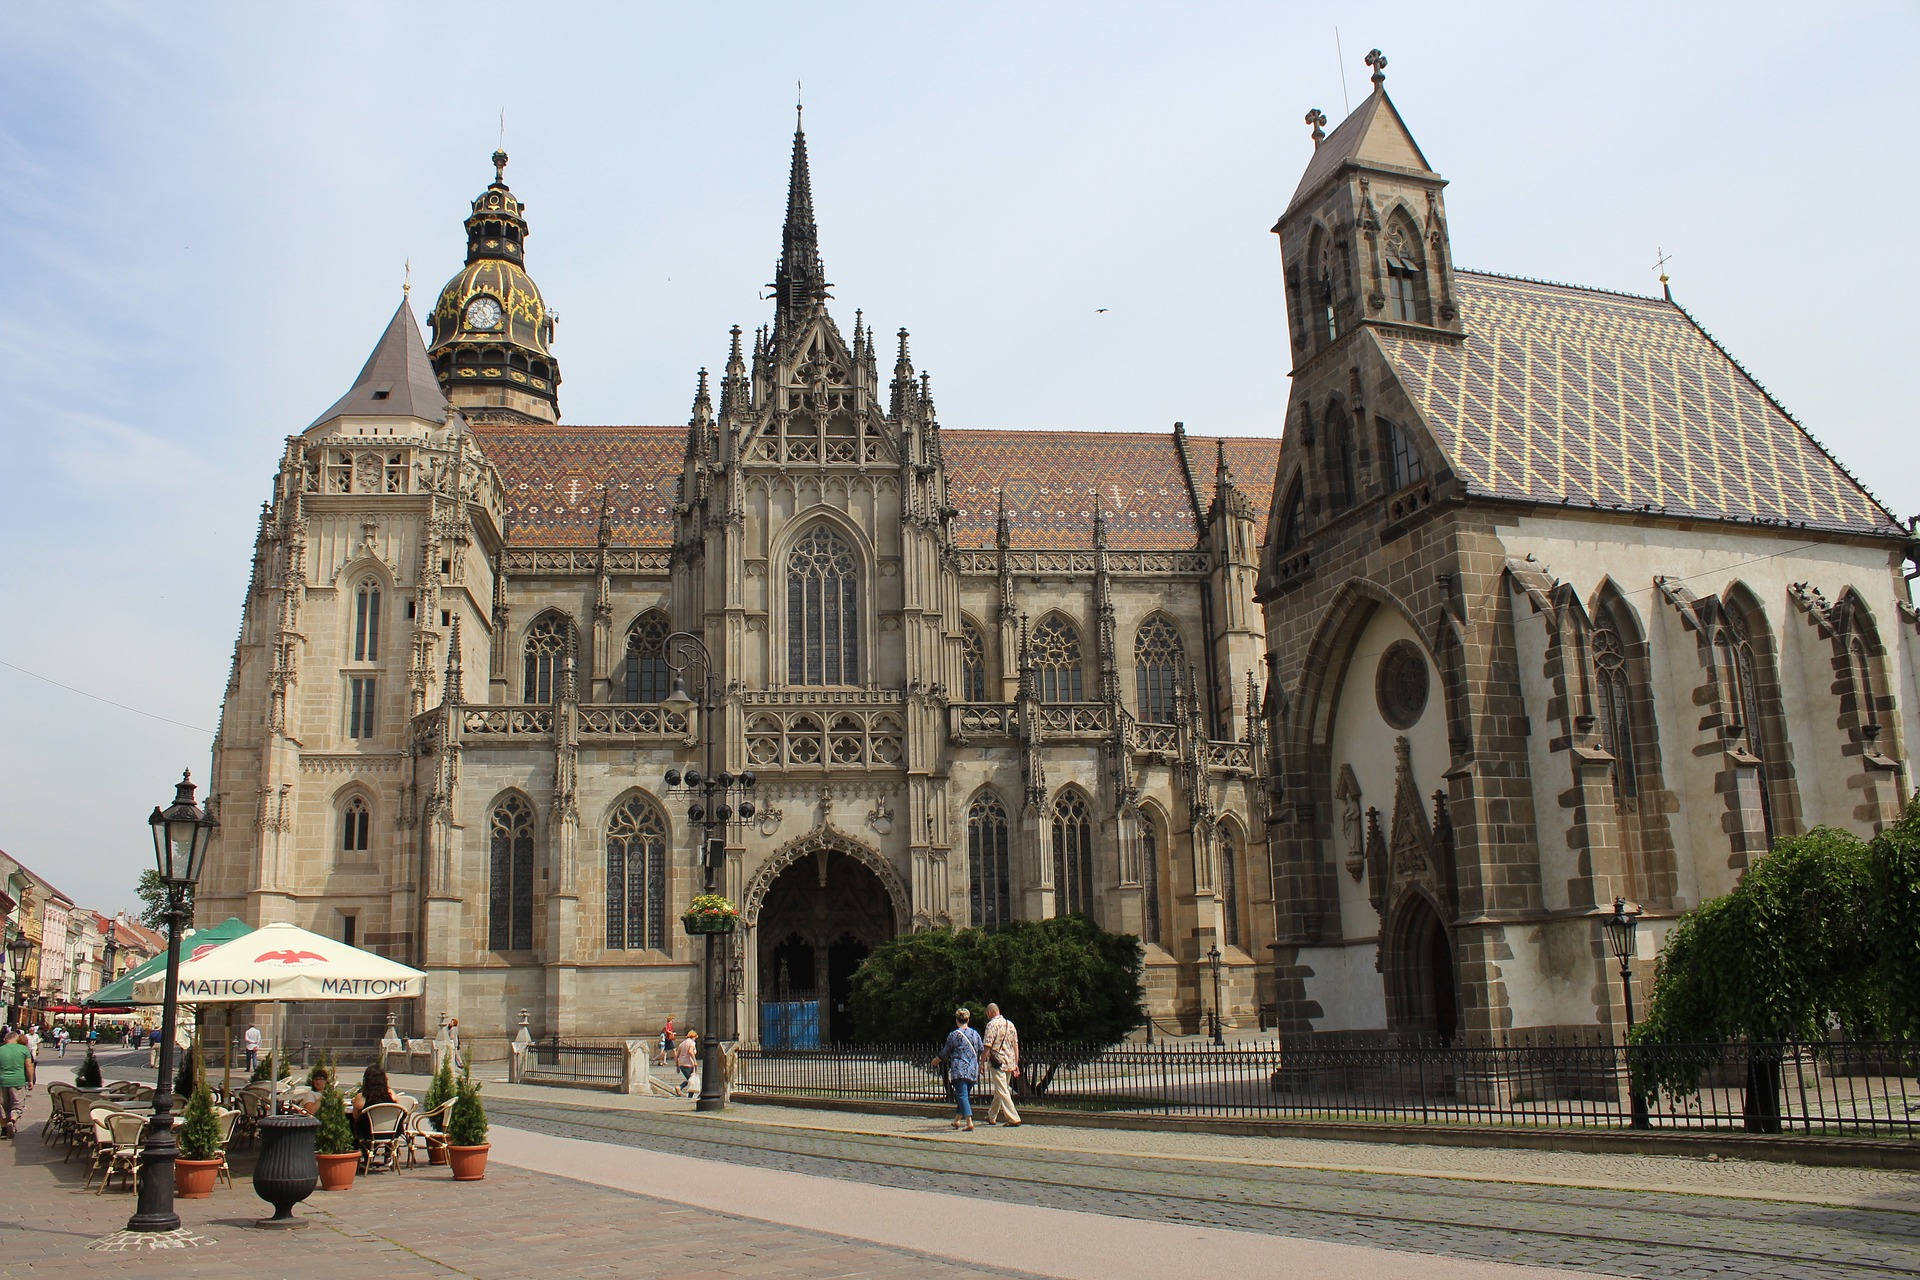 A beautiful feat of architecture with this Cathedral in Kosice, Slovakia.